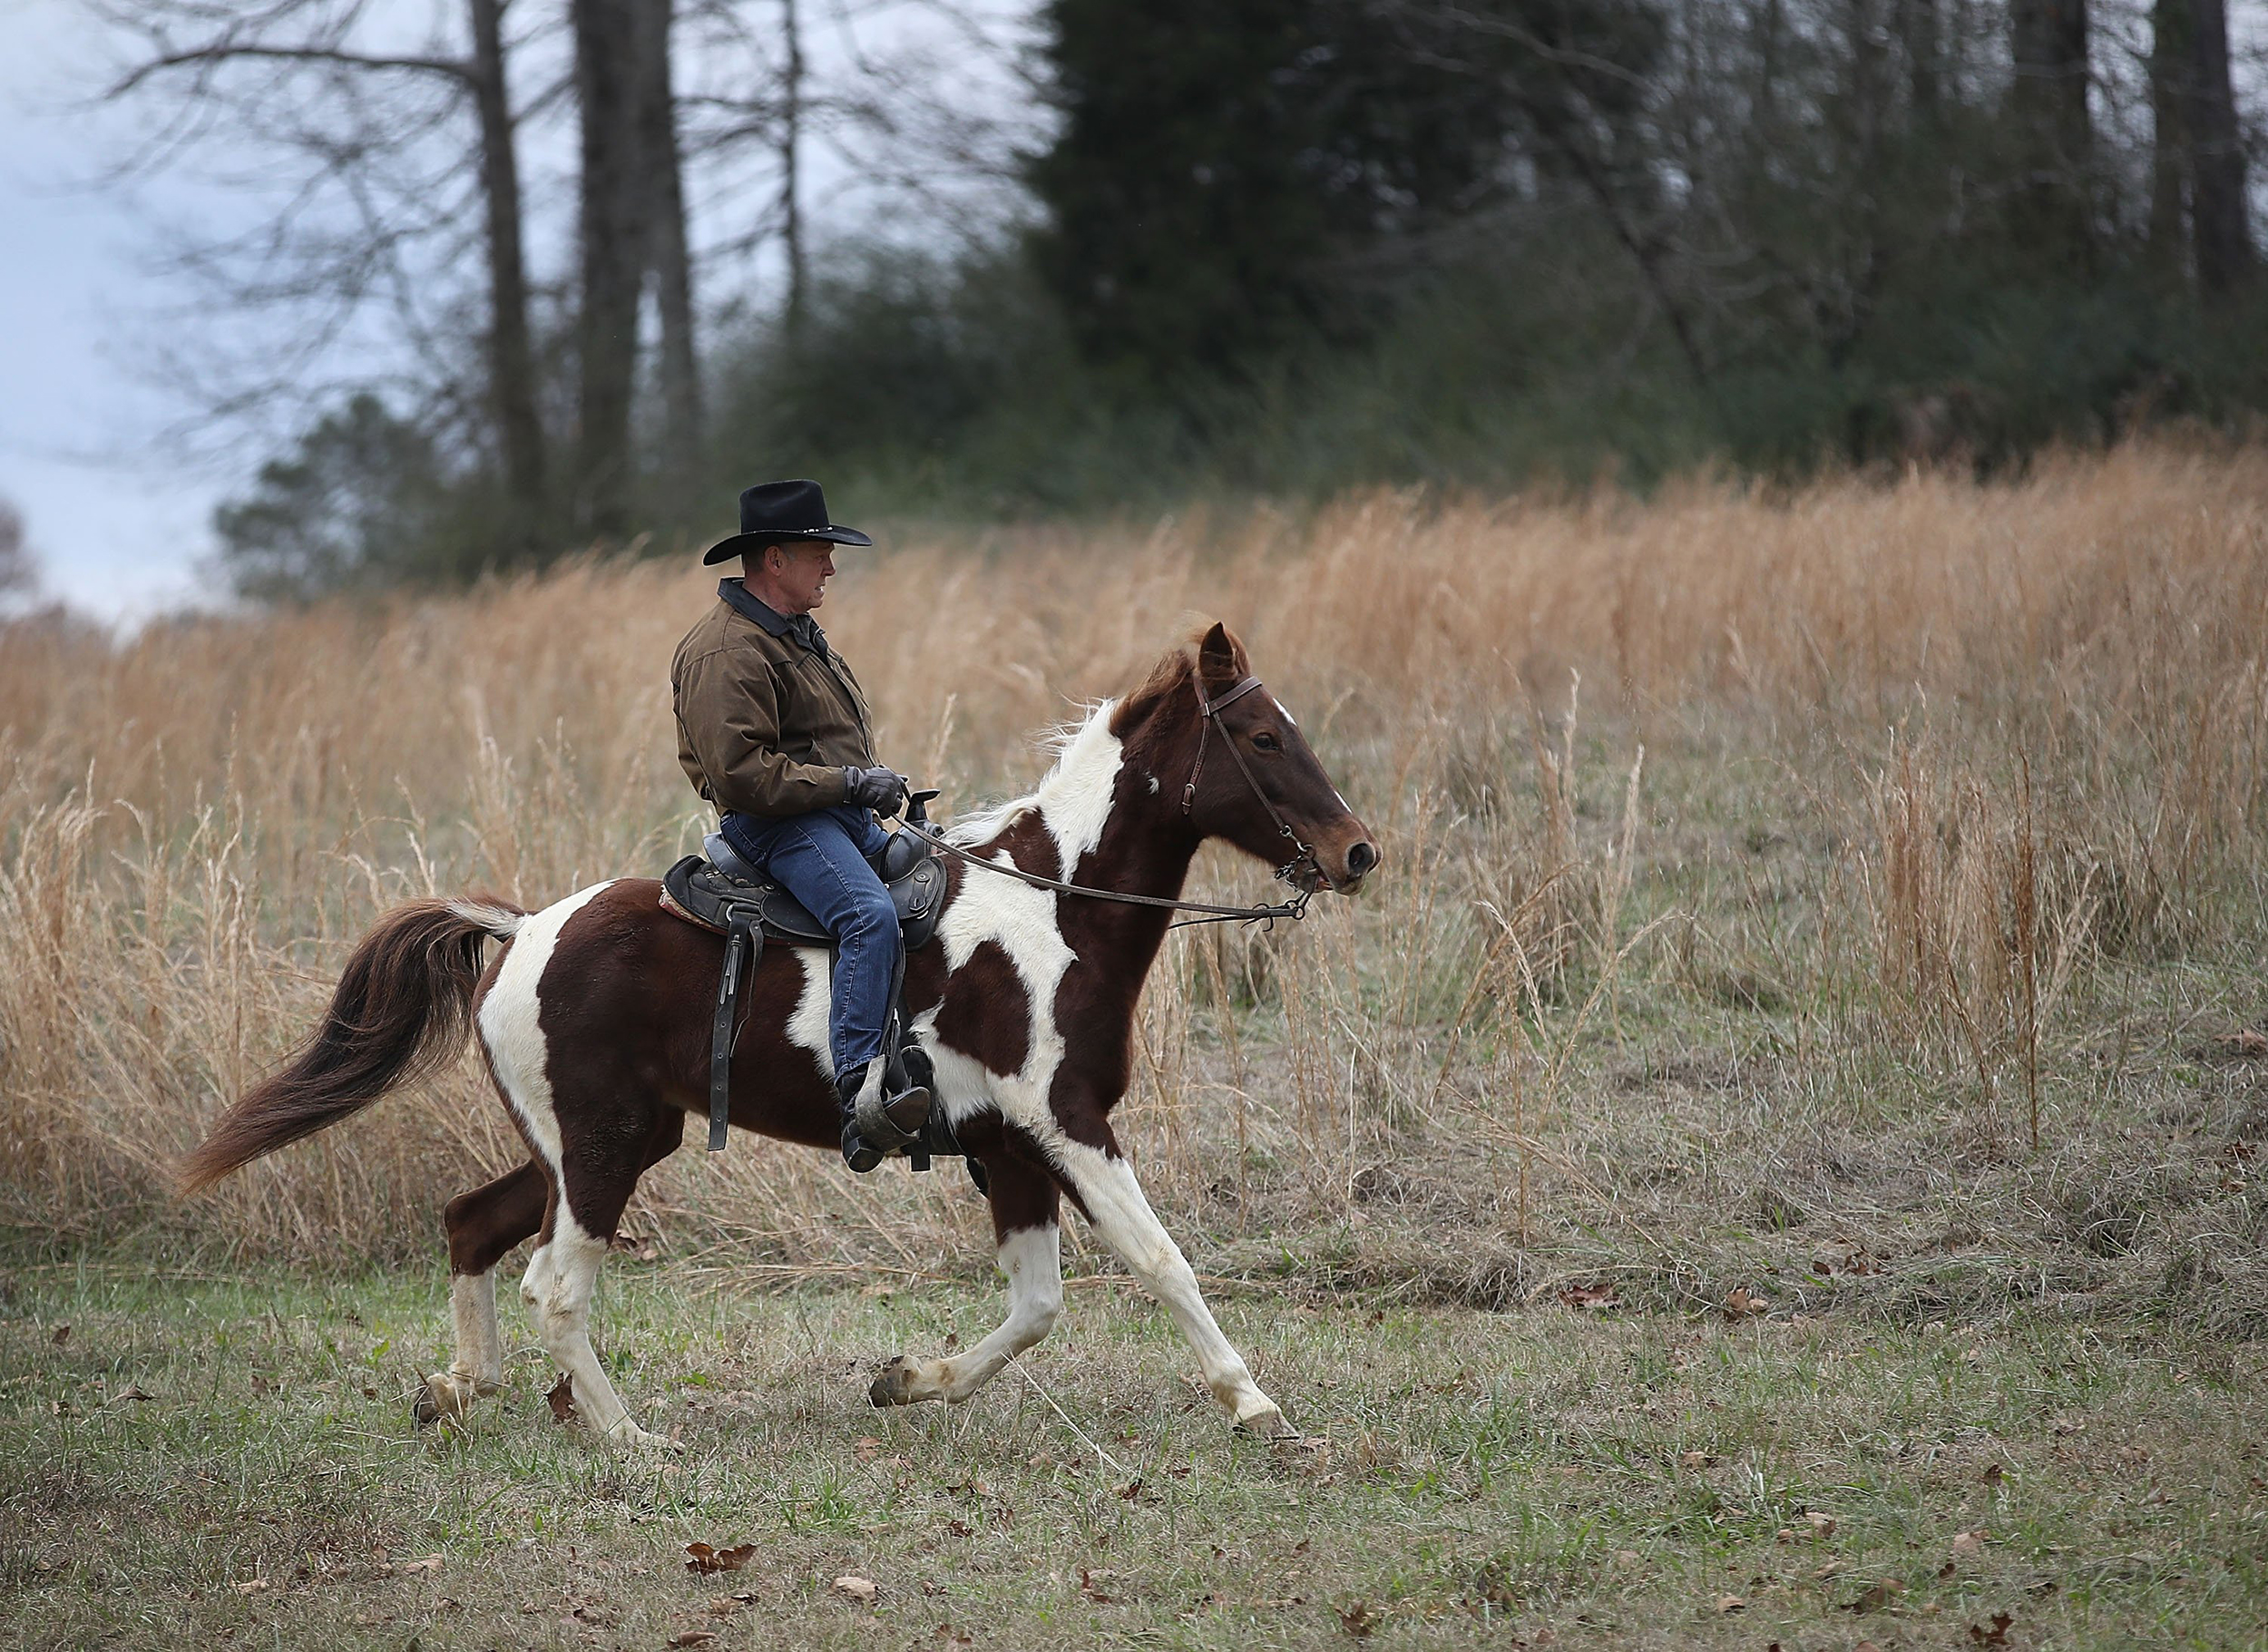 Image: GOP Senate Candidate Judge Roy Moore Arrives At Polling Station To Vote By Horseback